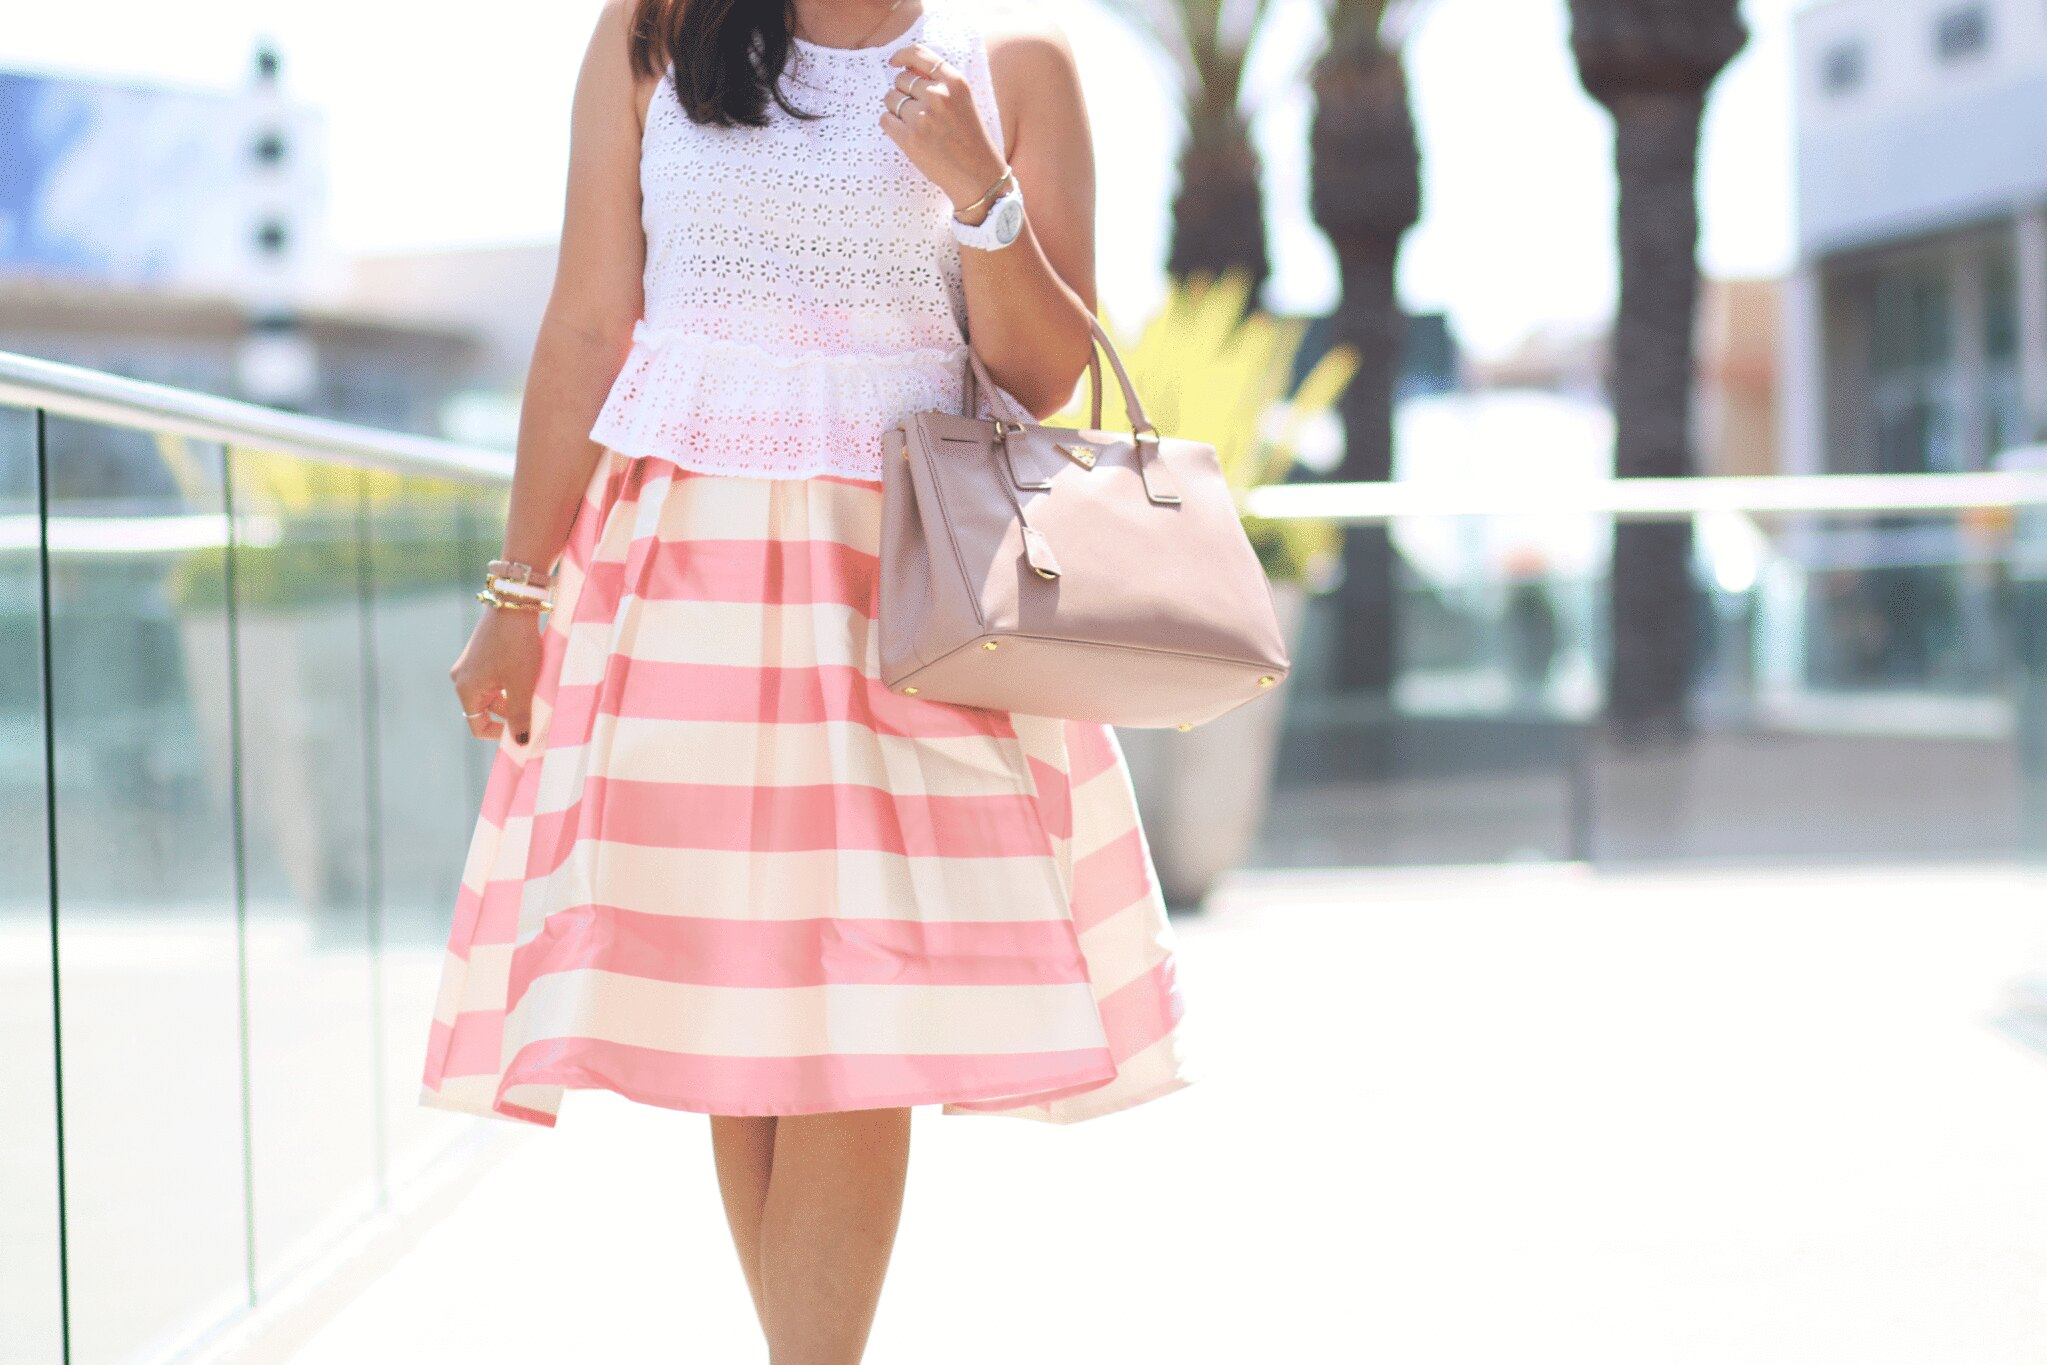 simplyxclassic, miriam gin, chicwish, stripe skirt, pink and white stripe skirt, white peplum tank, prada bag, summer outfit, fashion blogger, orange county